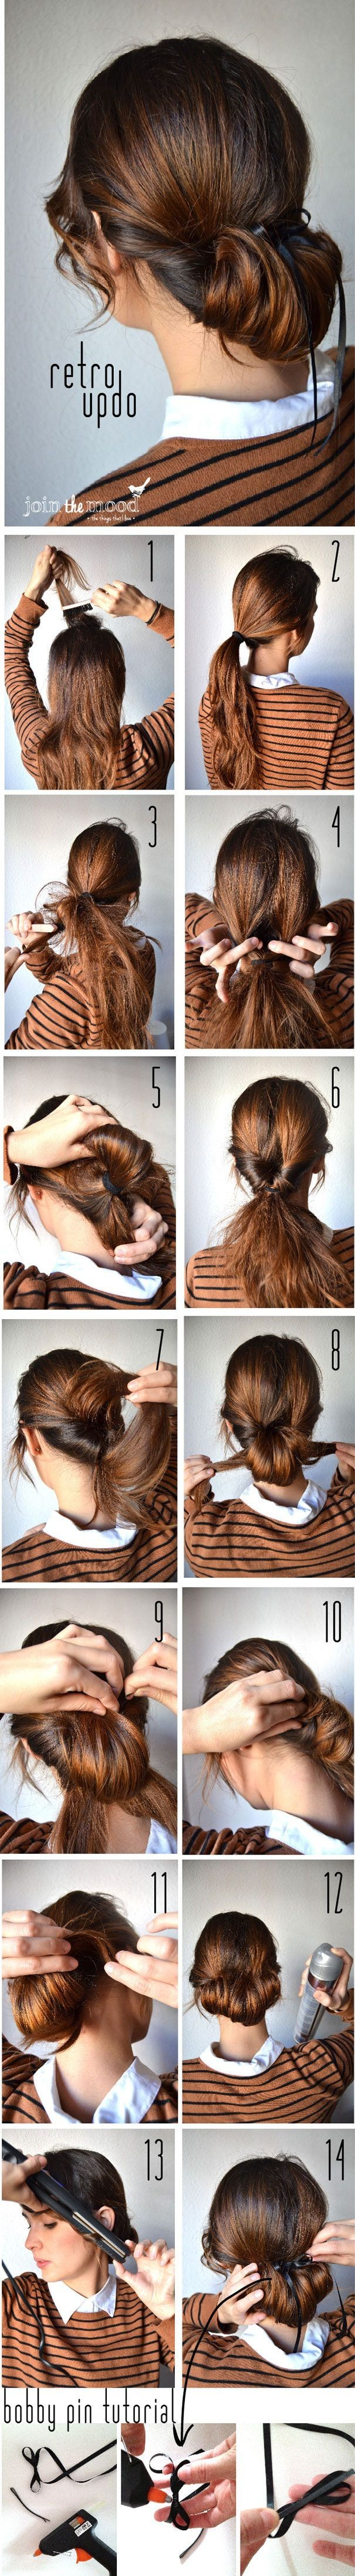 14 easy step by step updo hairstyles tutorials pretty designs retro updo tutorial baditri Image collections